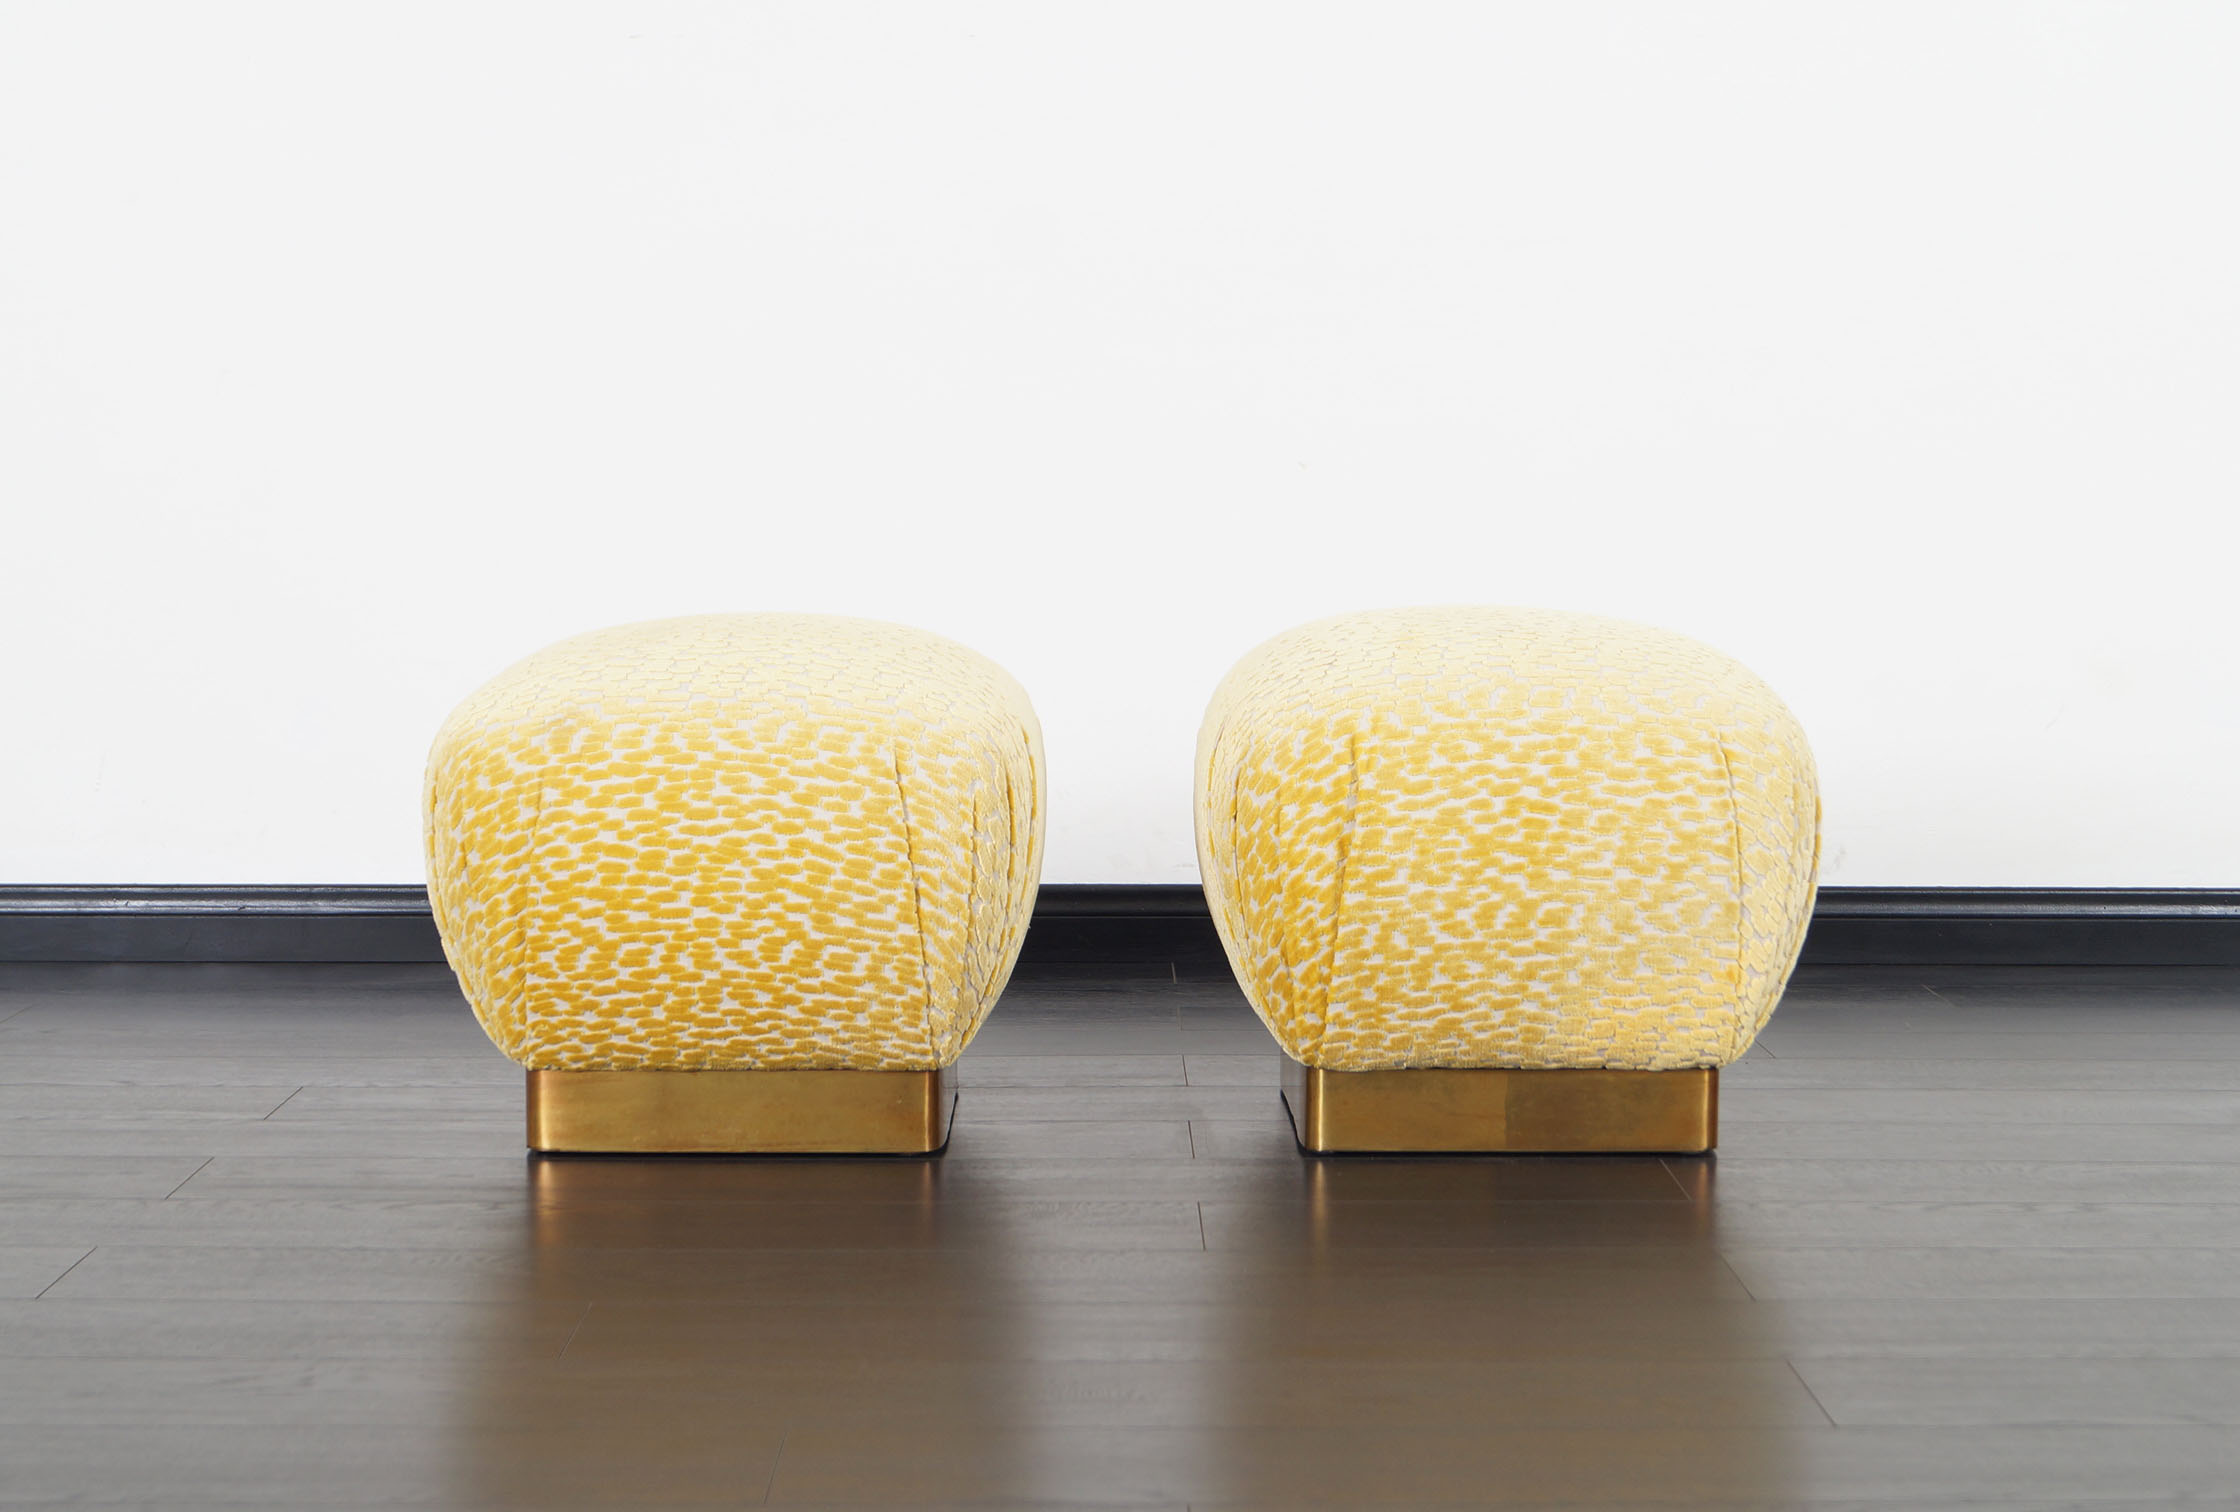 Vintage Brass Poufs by Marge Carson